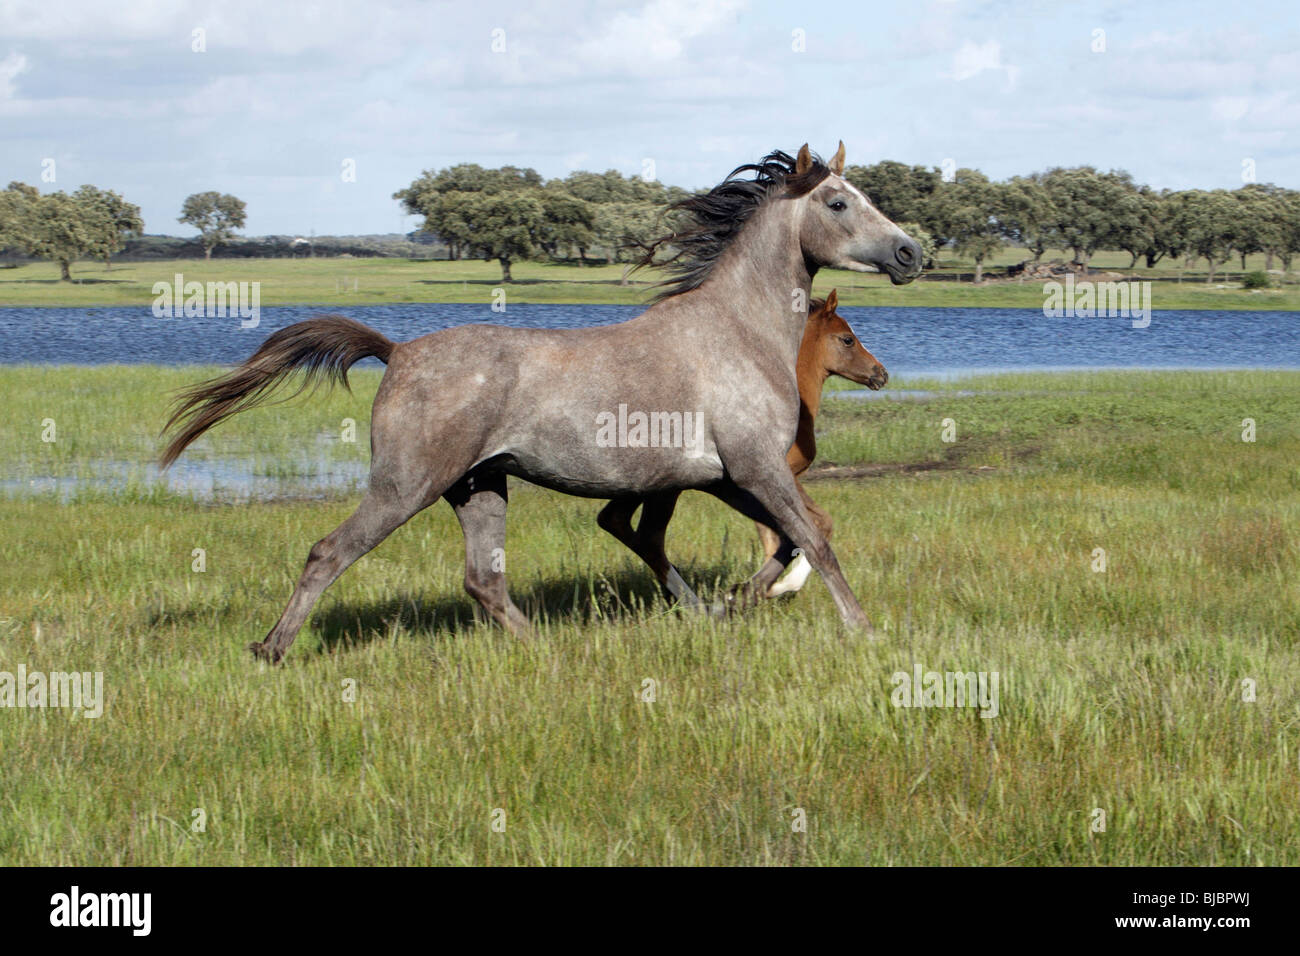 Arabic horses, mare with foal, trotting across meadow, Alentejo, Portugal - Stock Image